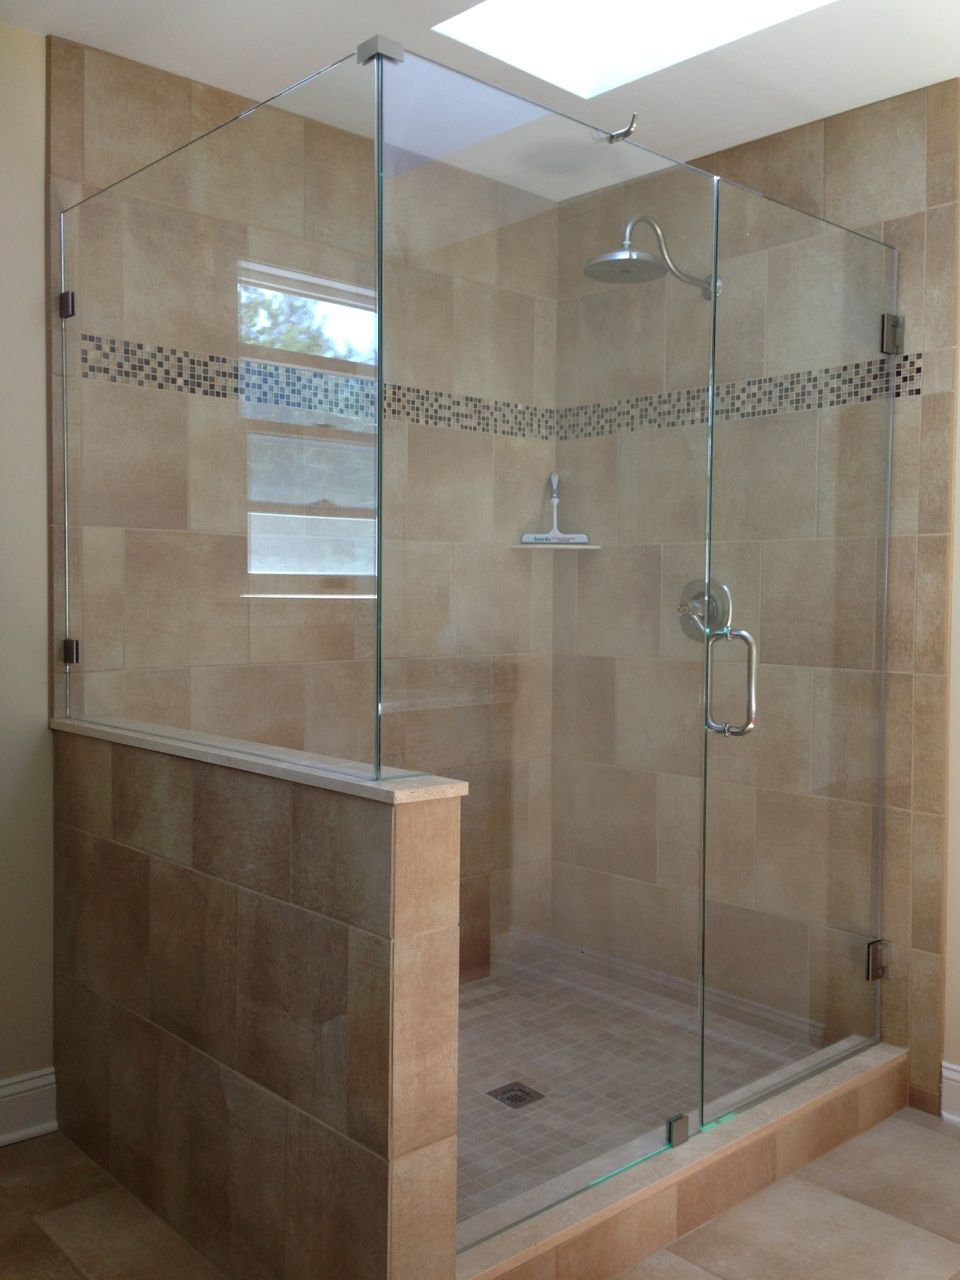 Half Shower Doors Is That A Half Shower Glass Or Is The Other Half Door